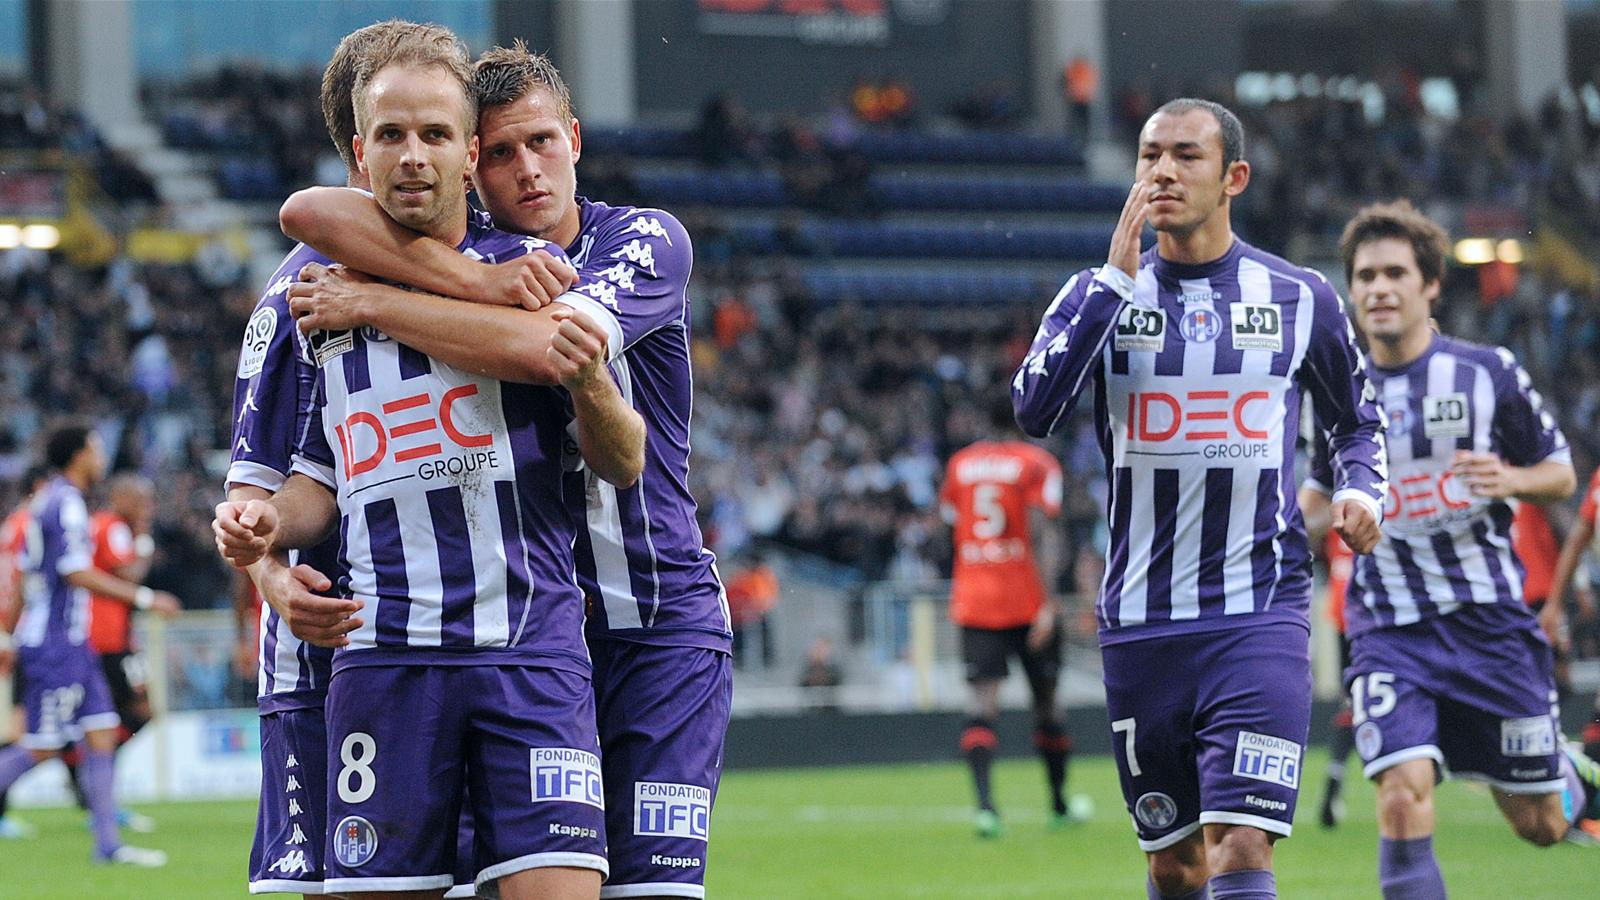 Match Rennes Toulouse en direct live streaming